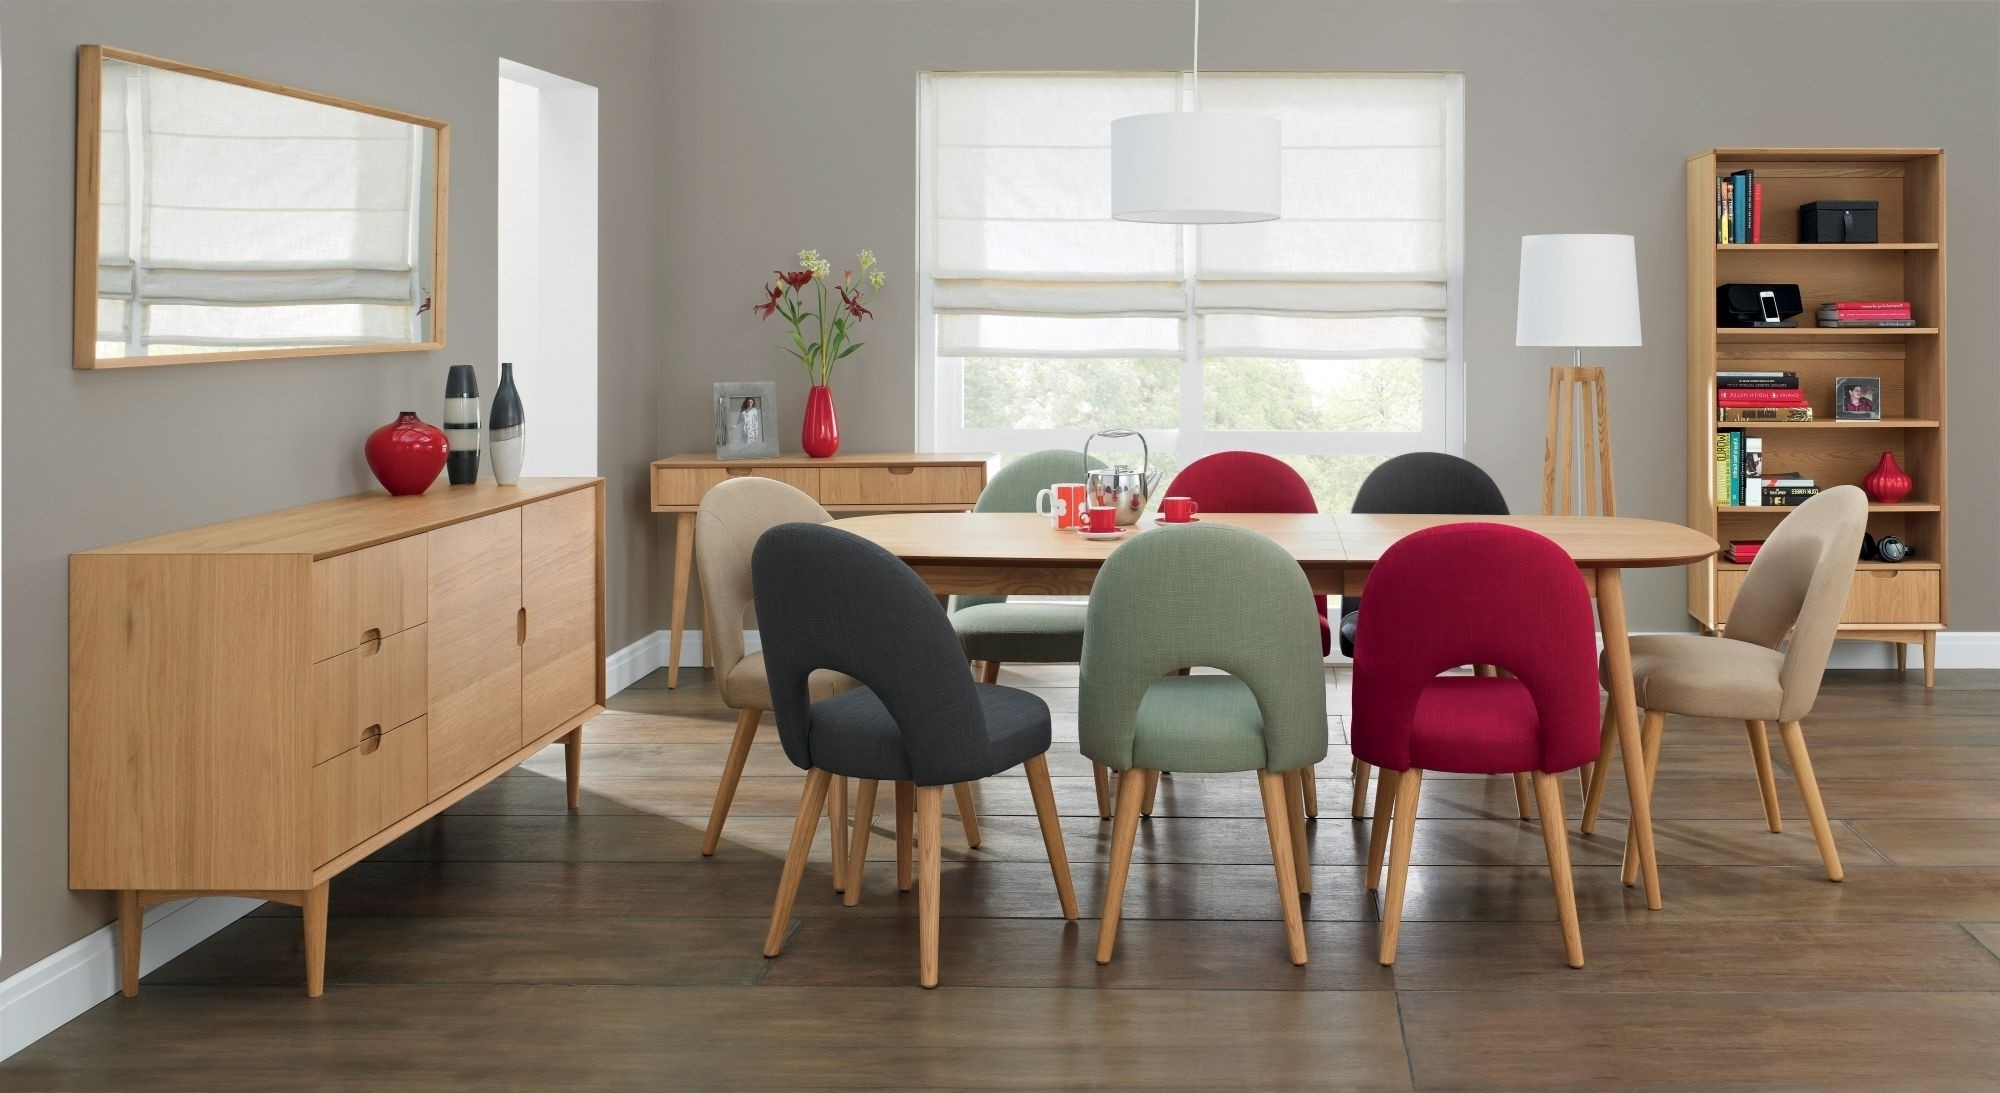 Oslo Oak 6 8 Seater Extending Dining Table – Style Our Home Inside 2017 8 Seater Oak Dining Tables (View 16 of 25)